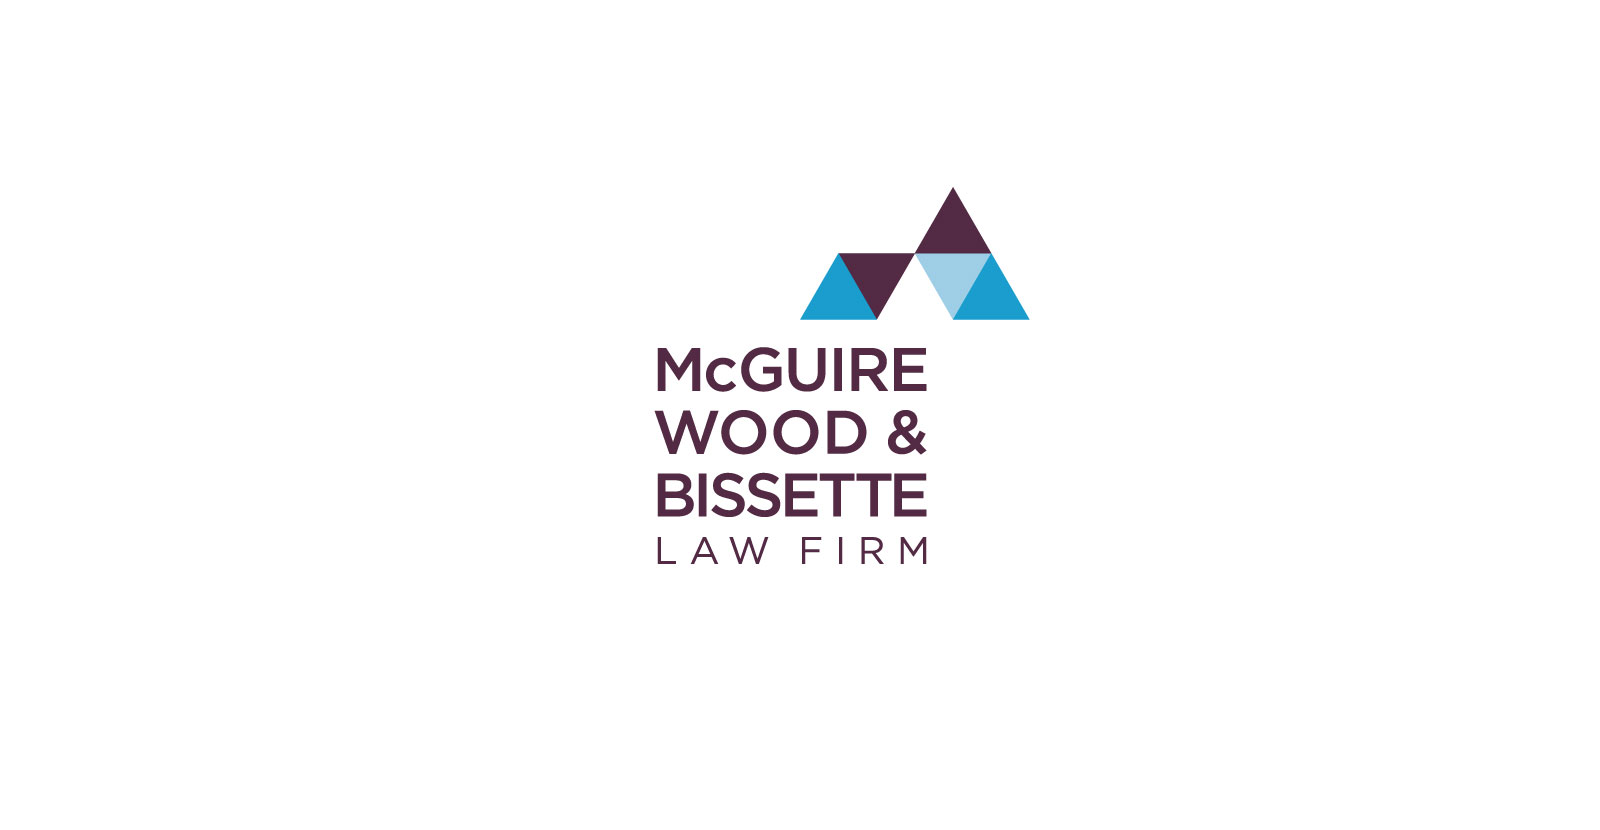 McGuire Wood & Bissette Law Firm primary logo in burgundy and blue, shown against a white background.